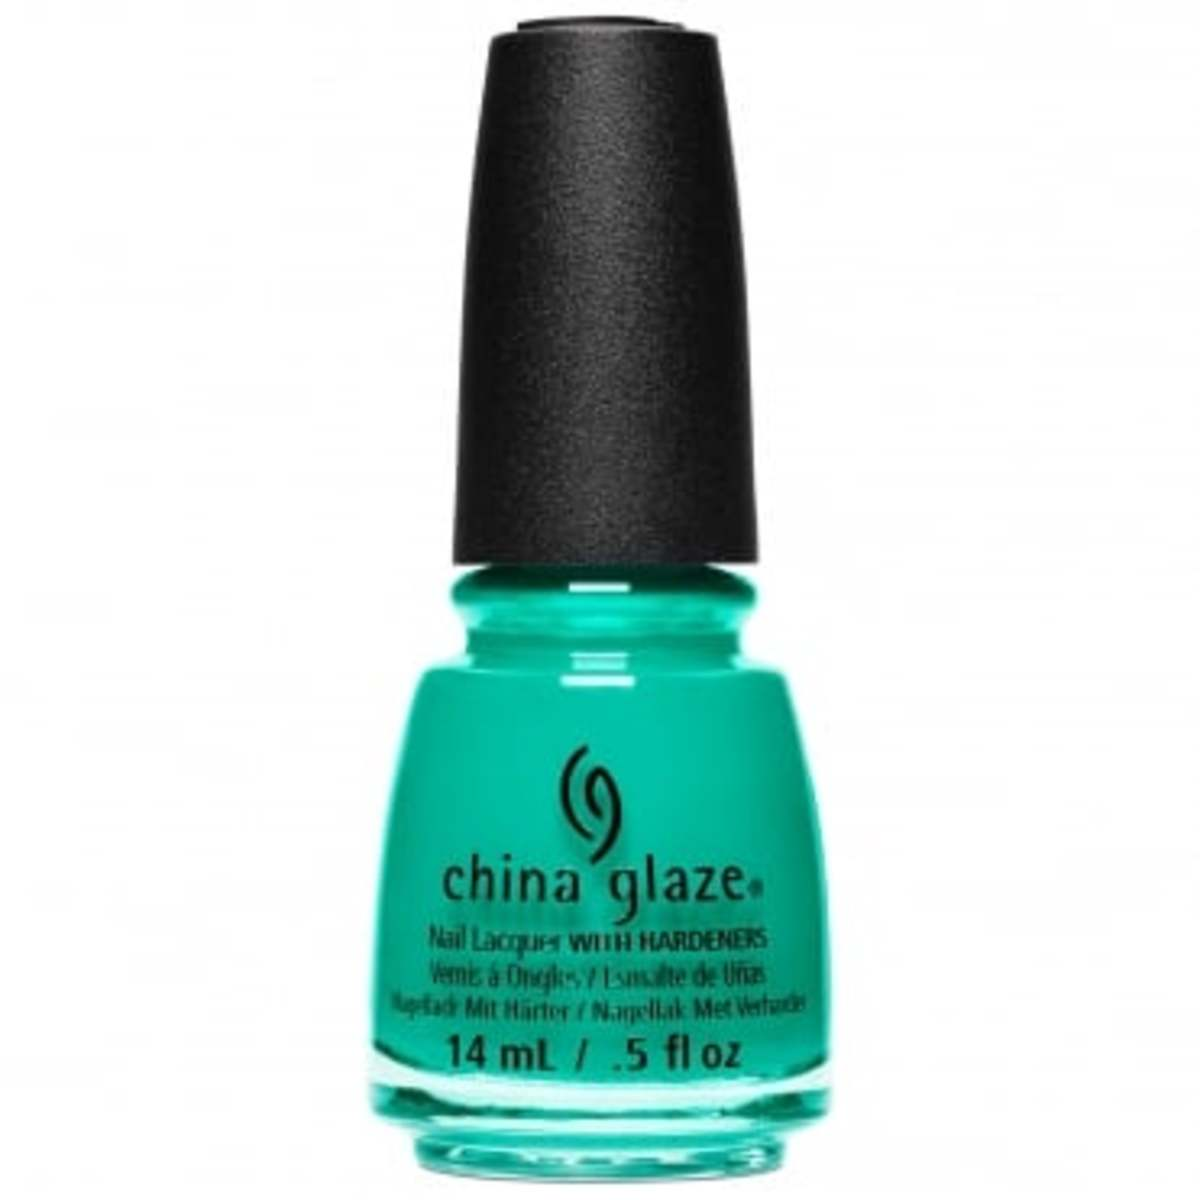 Activewear Con't Care - China Glaze Spring 2018